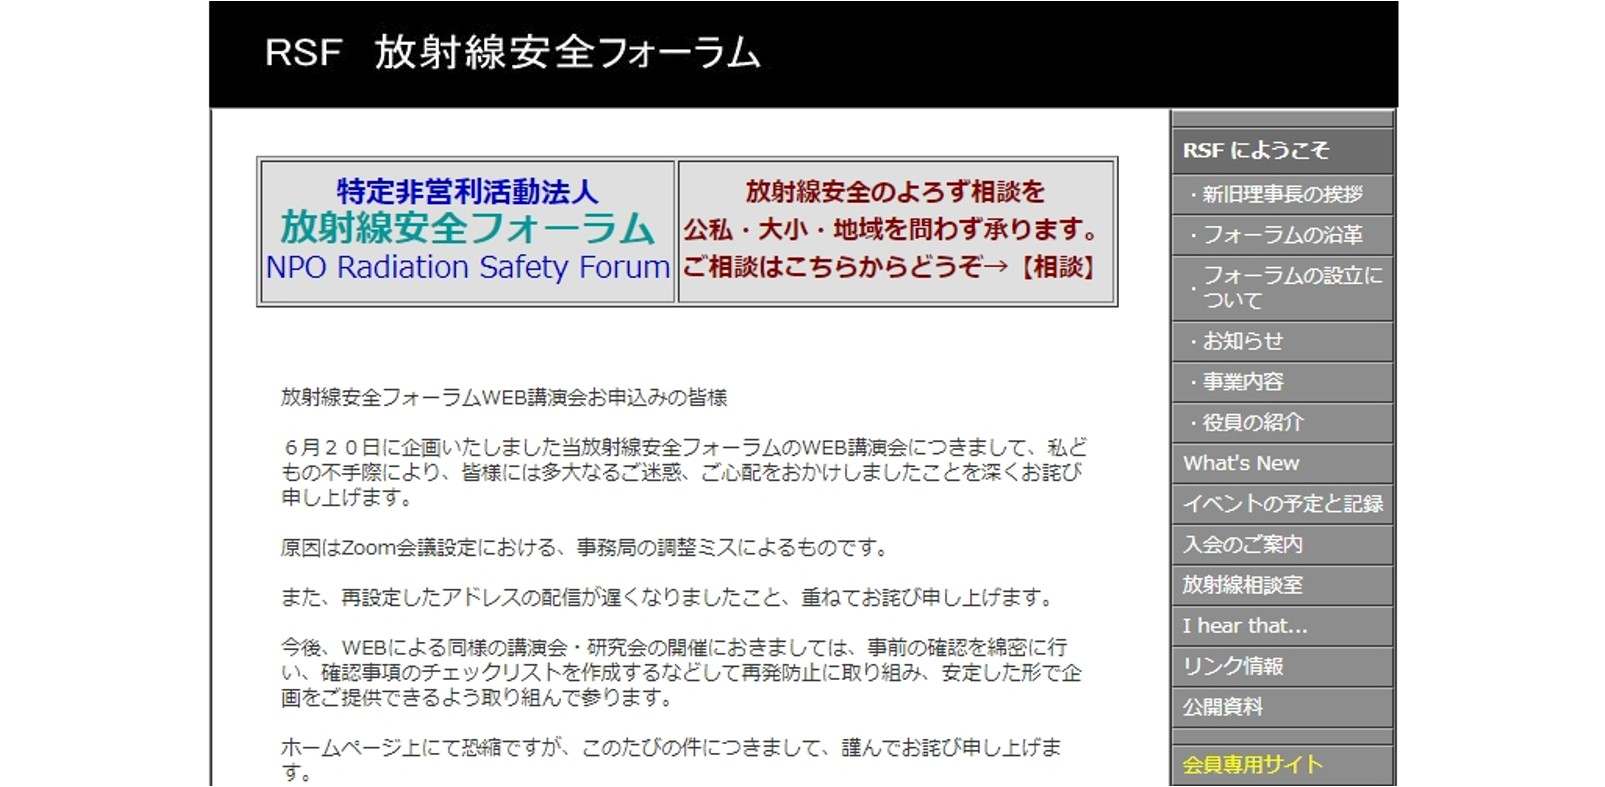 NPO Radiation Safety Forum